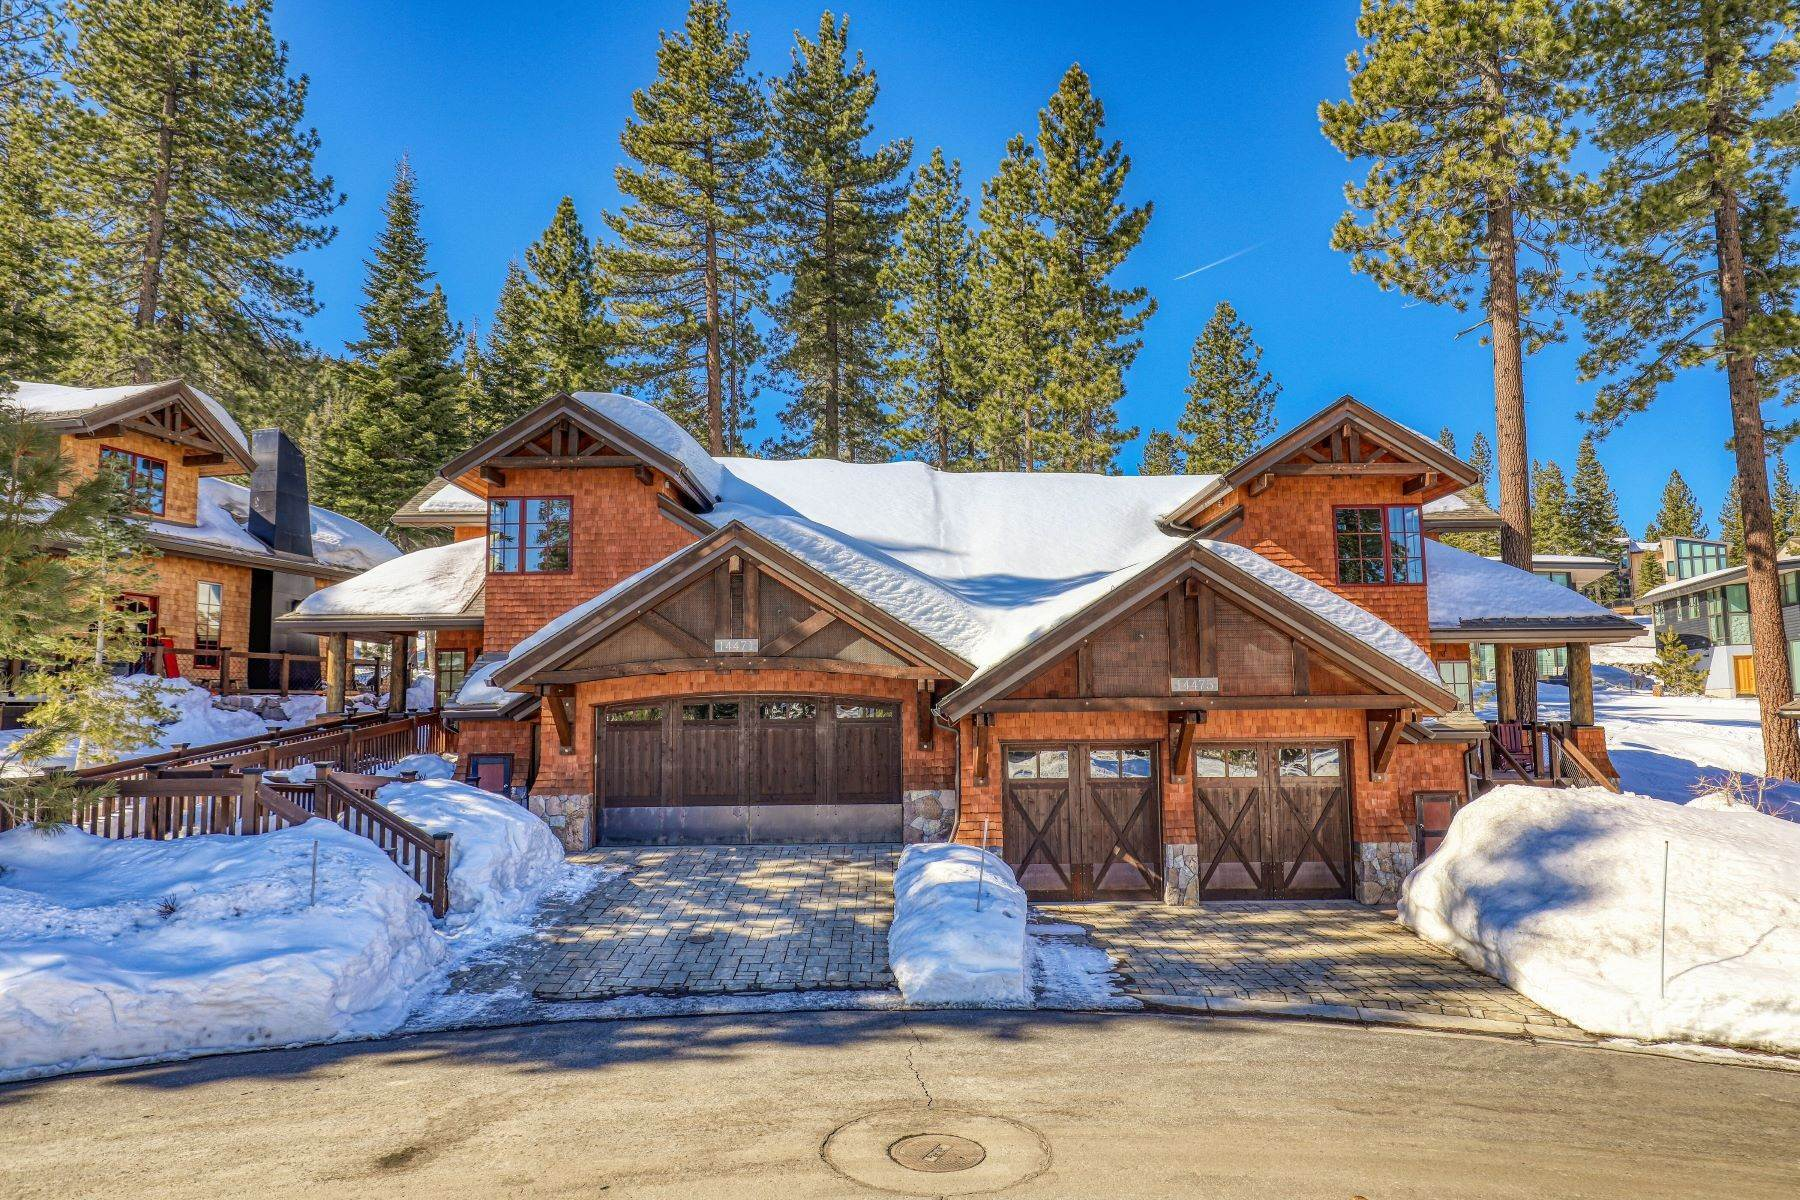 Property for Active at 14471 Home Run Trail #10 Truckee, California 96161 United States